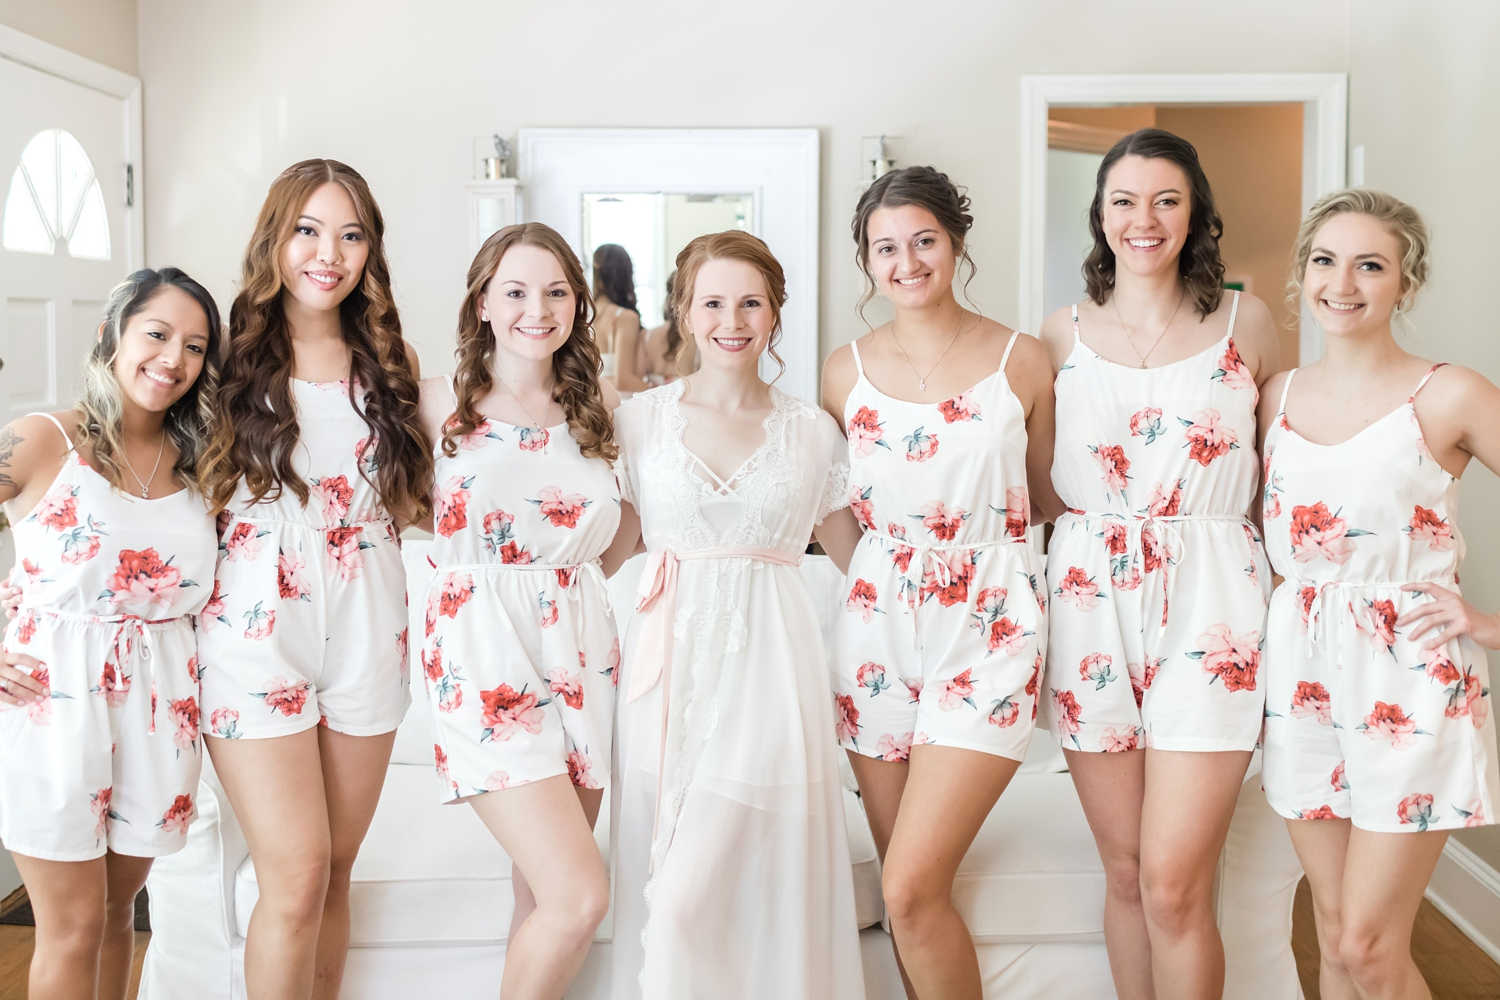 How adorable are these rompers?! And Jessica your robe is stunning!